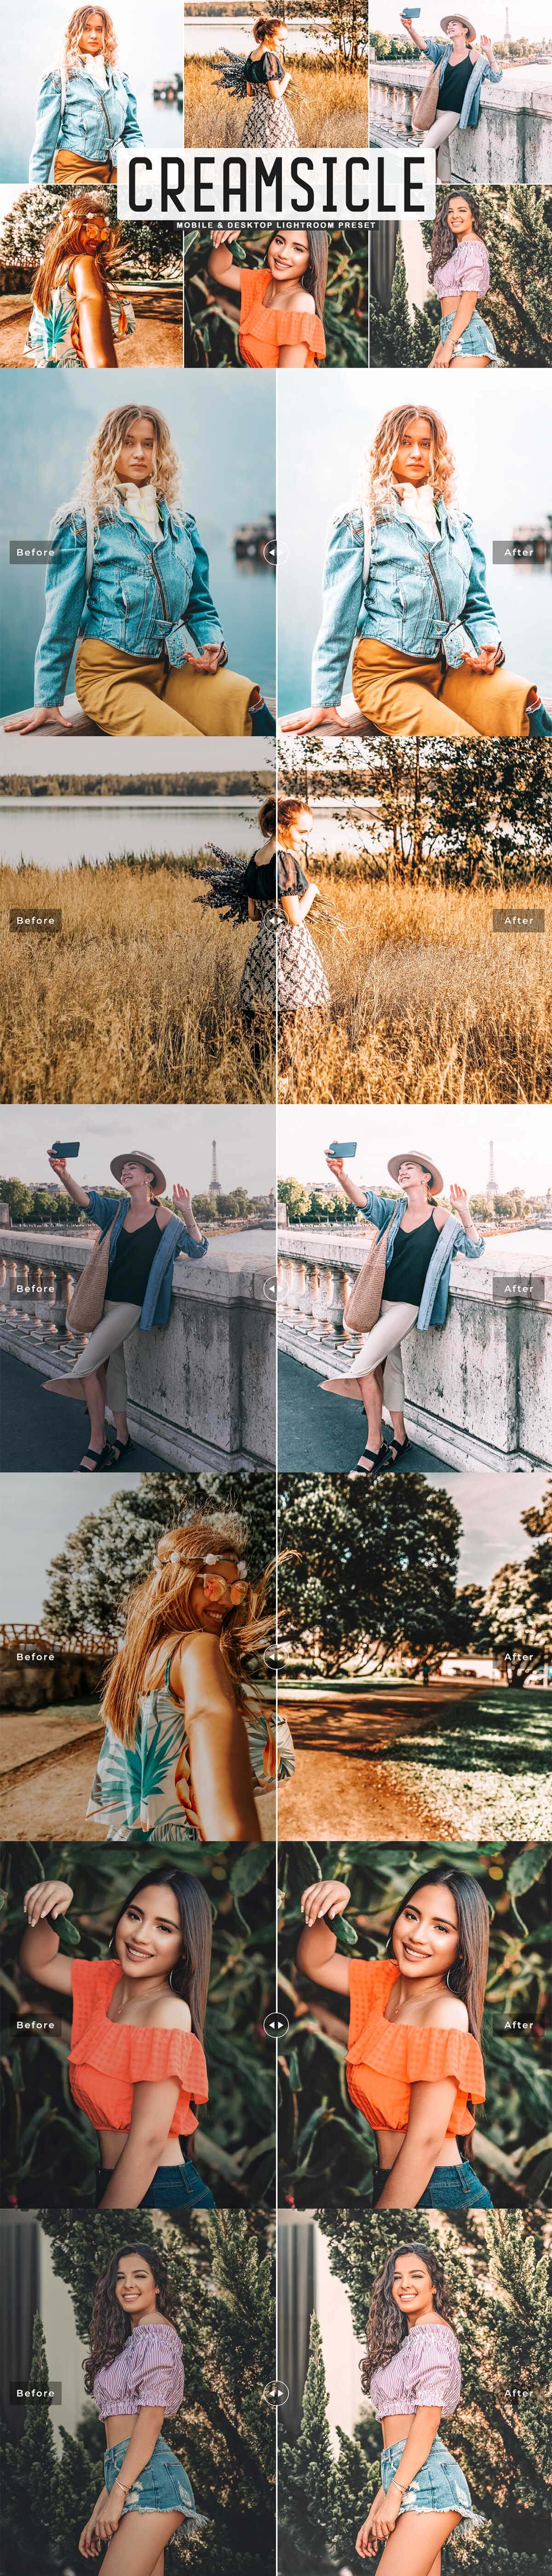 Free Creamsicle Lightroom Preset